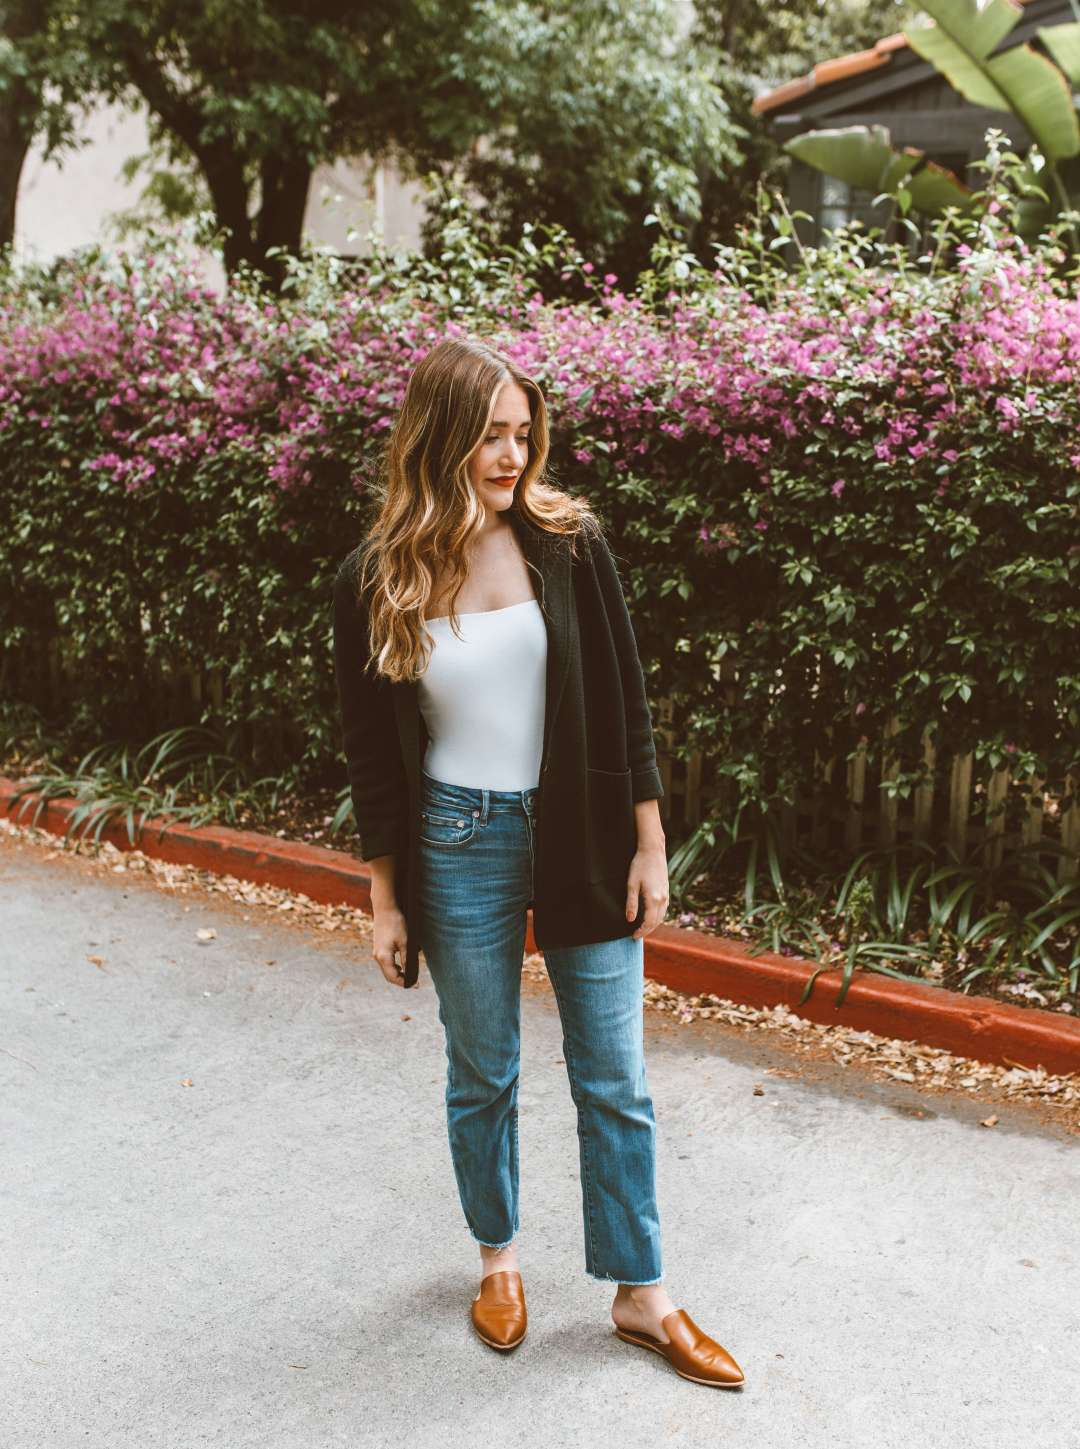 The Lightweight Blazer You Need For Spring | Twinspiration